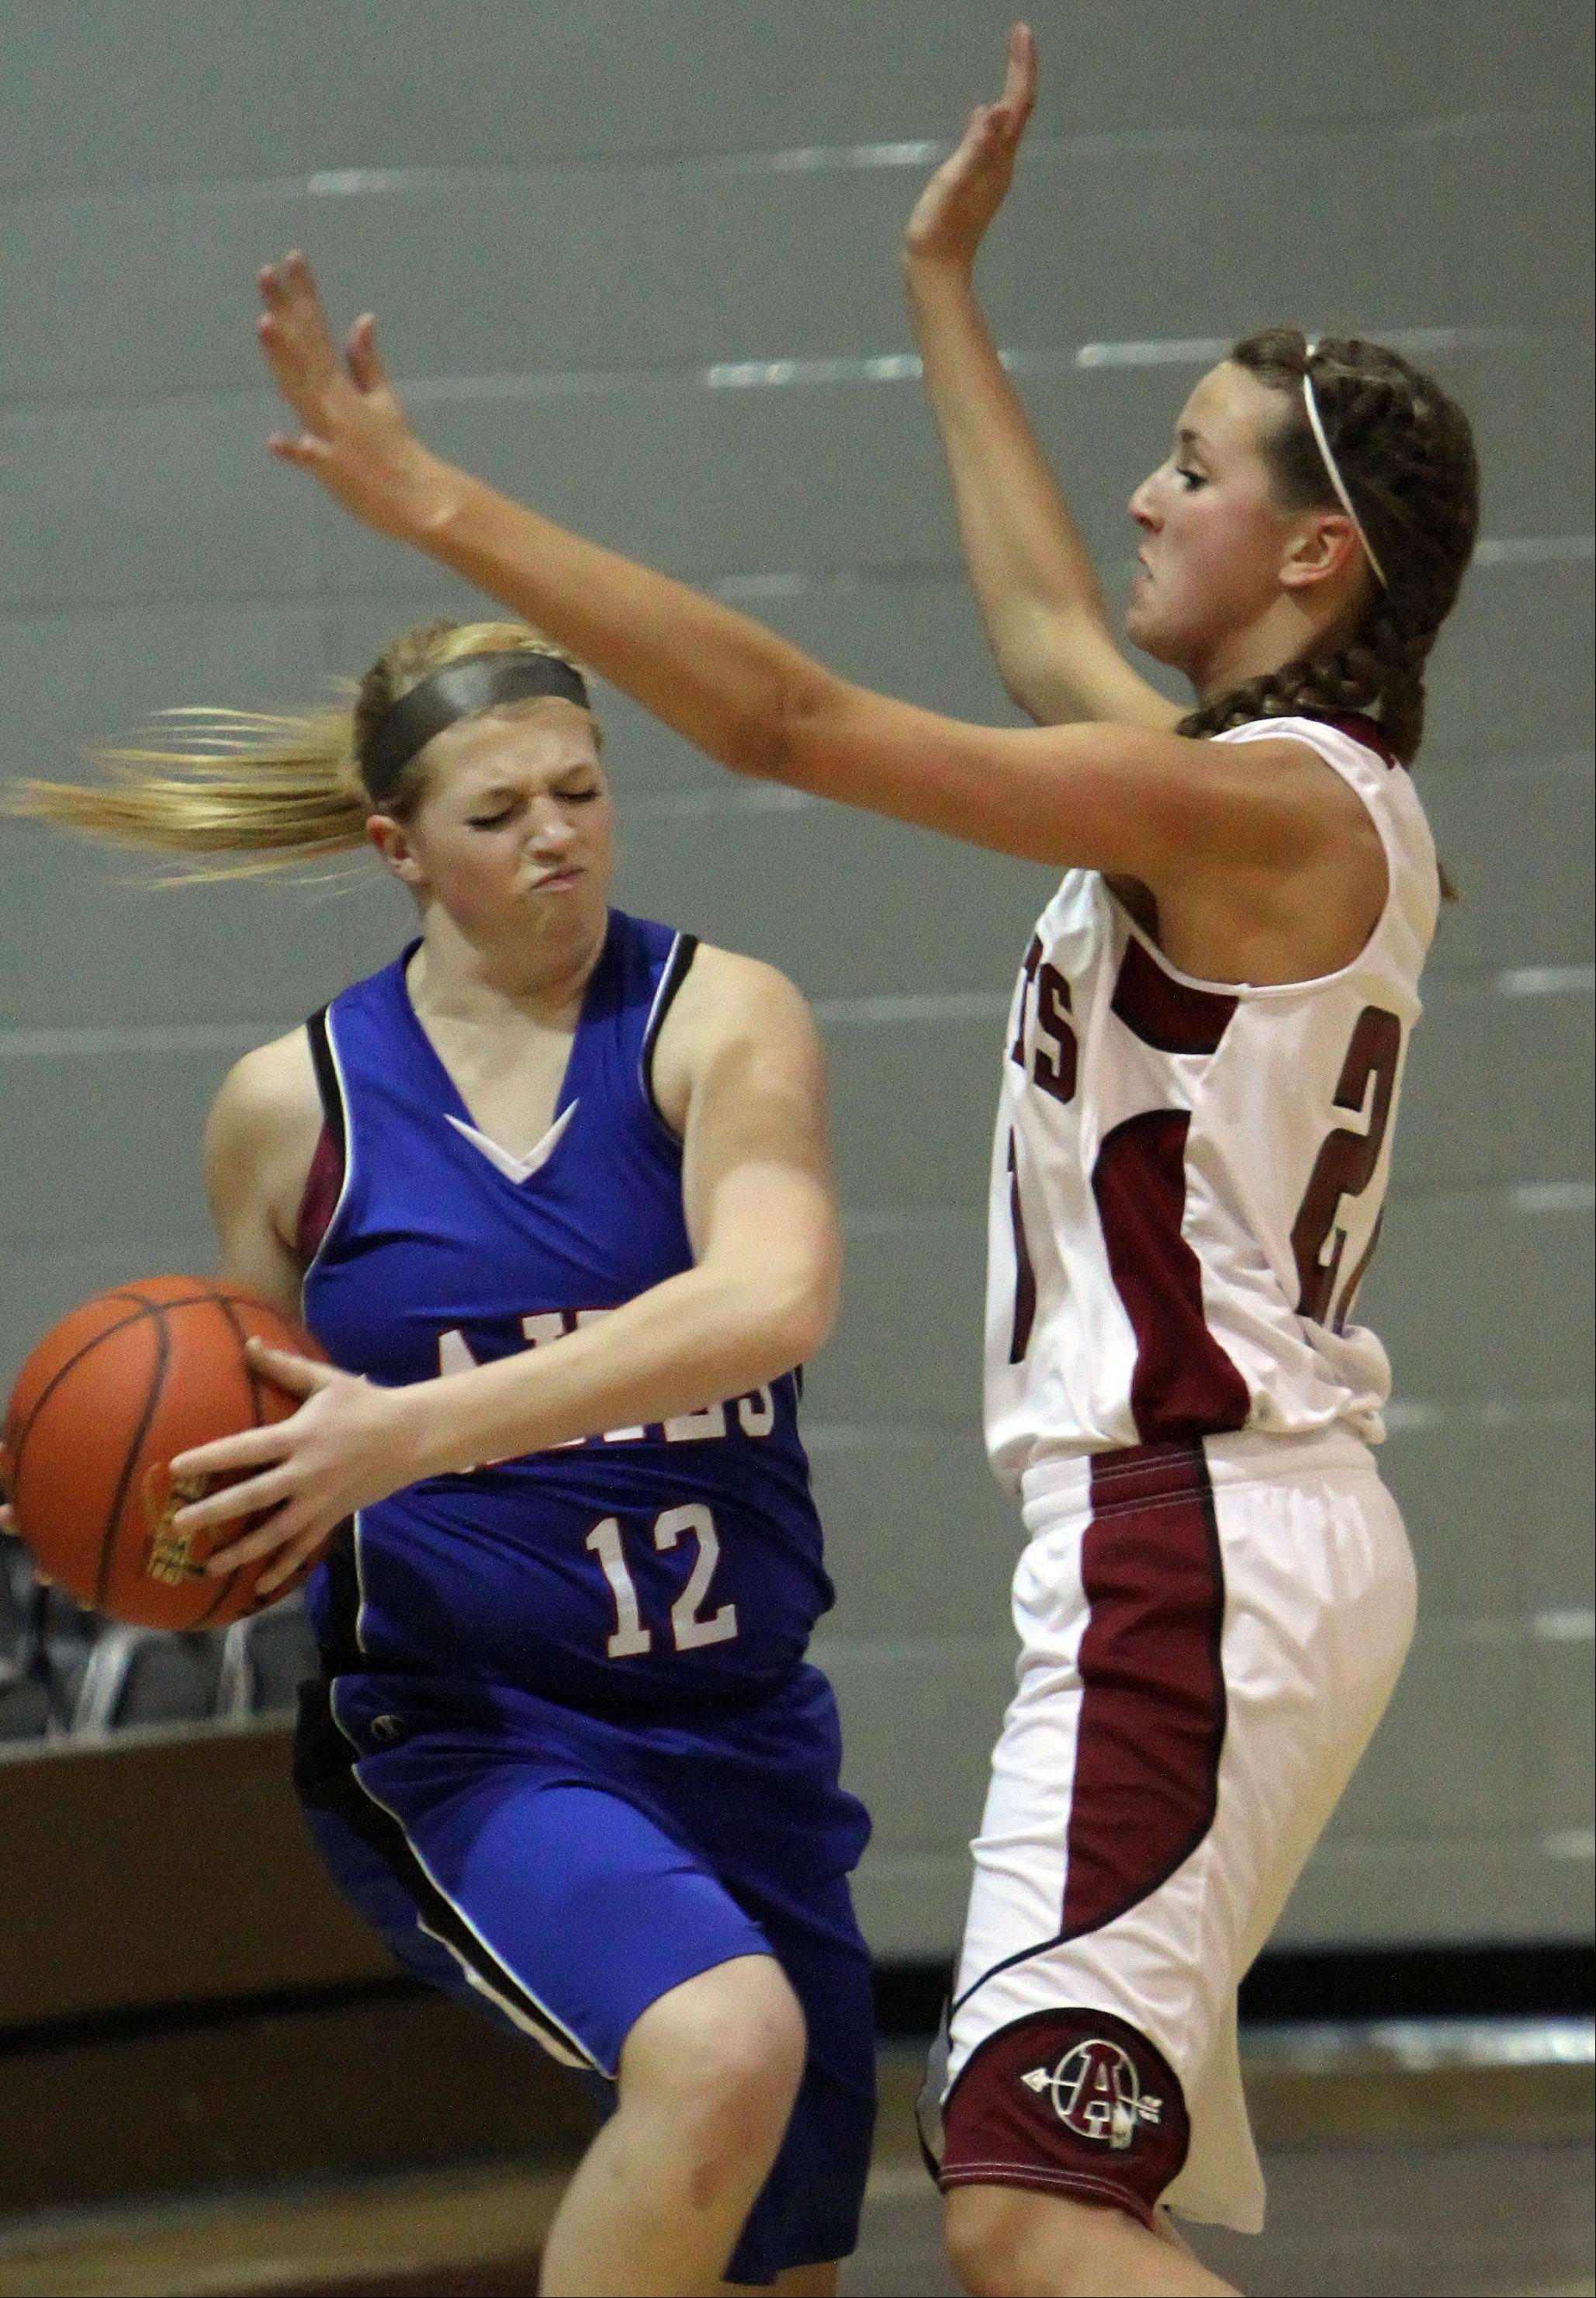 Lakes' Dayna Olson, left, tries to get around Antioch's Carly McCameron on Tuesday night at Antioch.